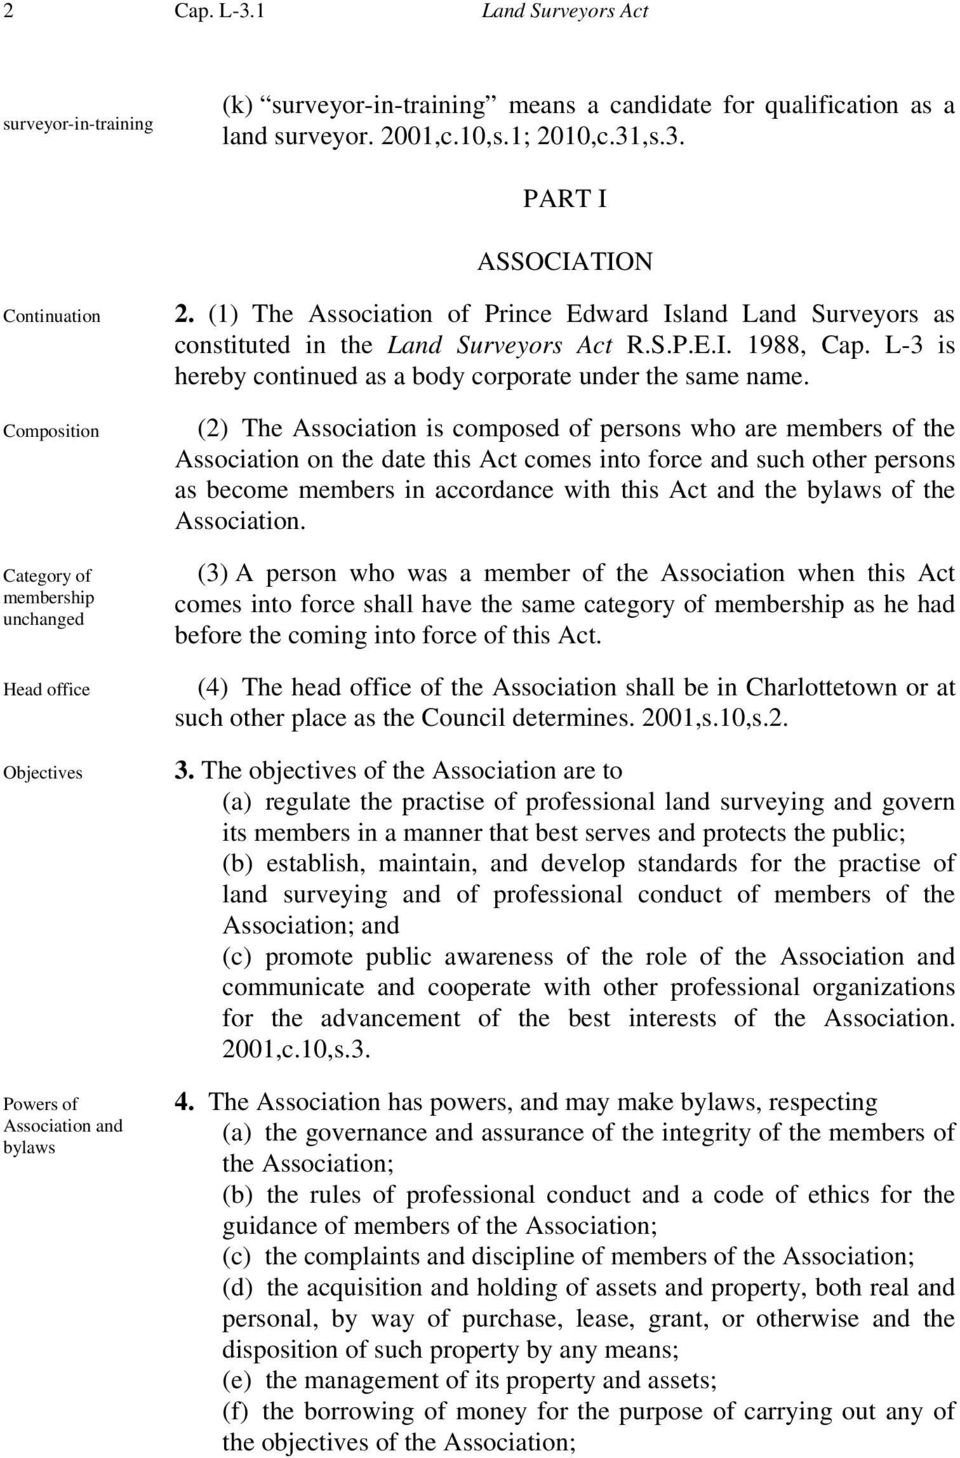 (2) The Association is composed of persons who are members of the Association on the date this Act comes into force and such other persons as become members in accordance with this Act and the bylaws